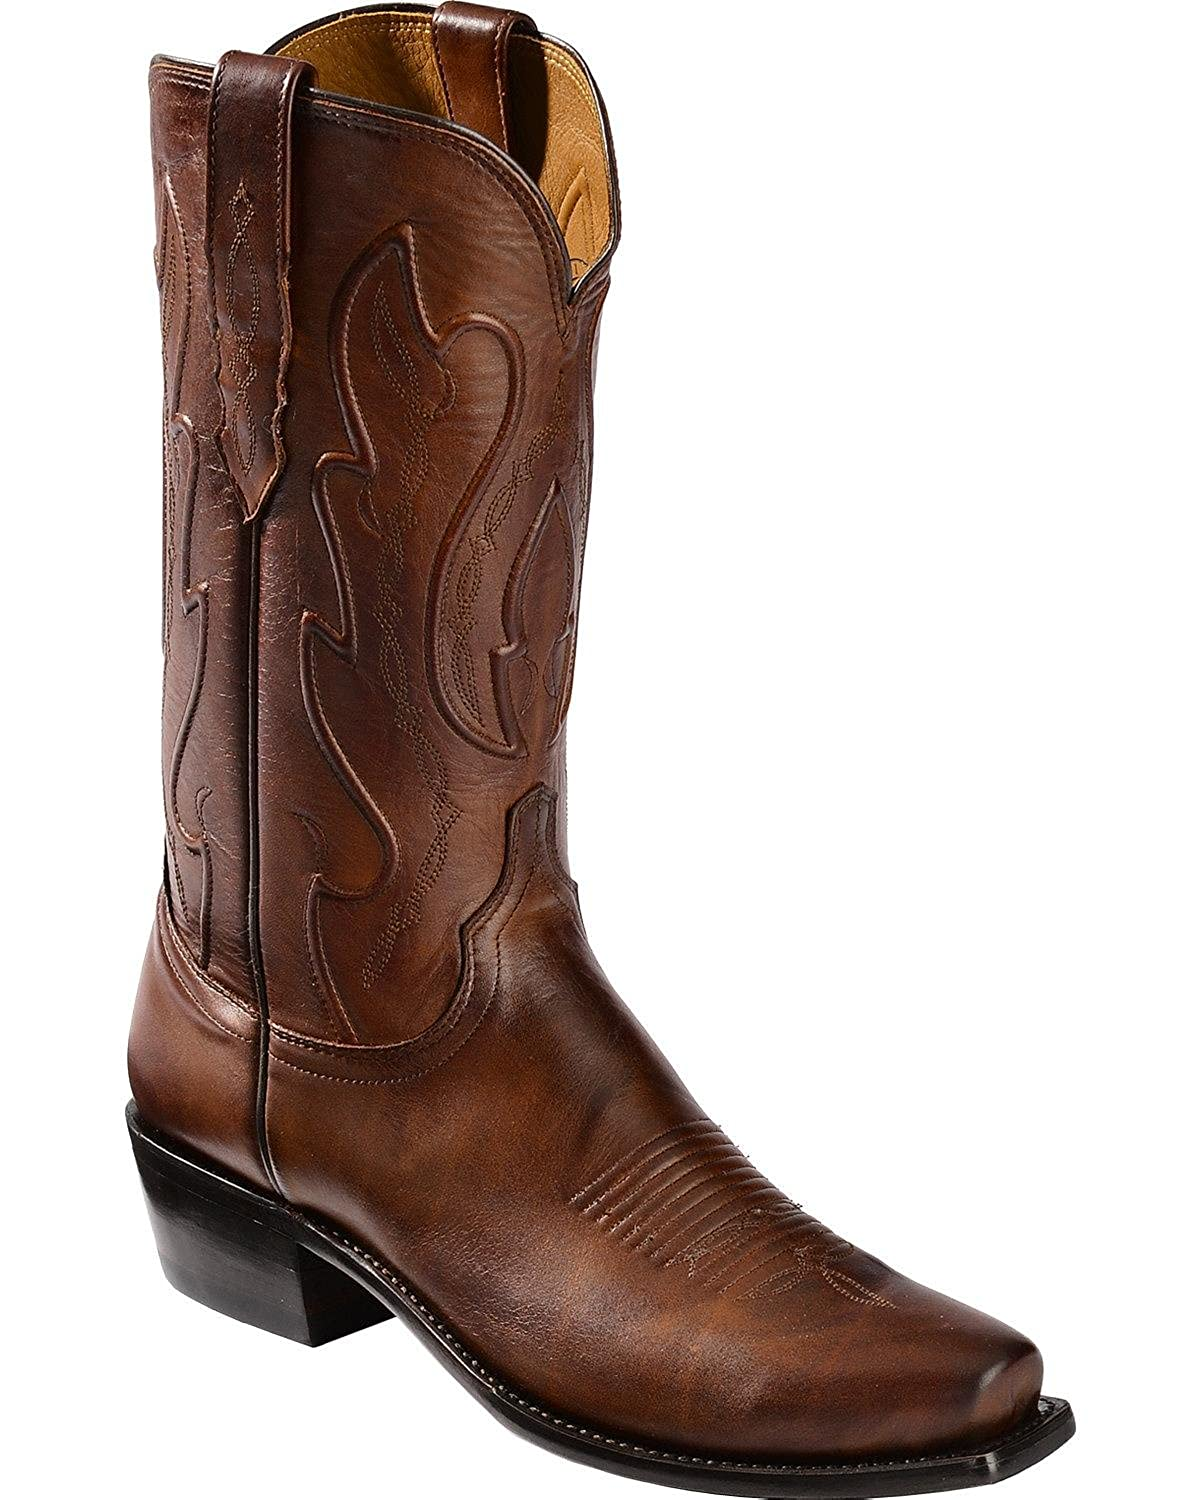 Lucchese Men's Handmade 1883 Cole Cowboy Boot